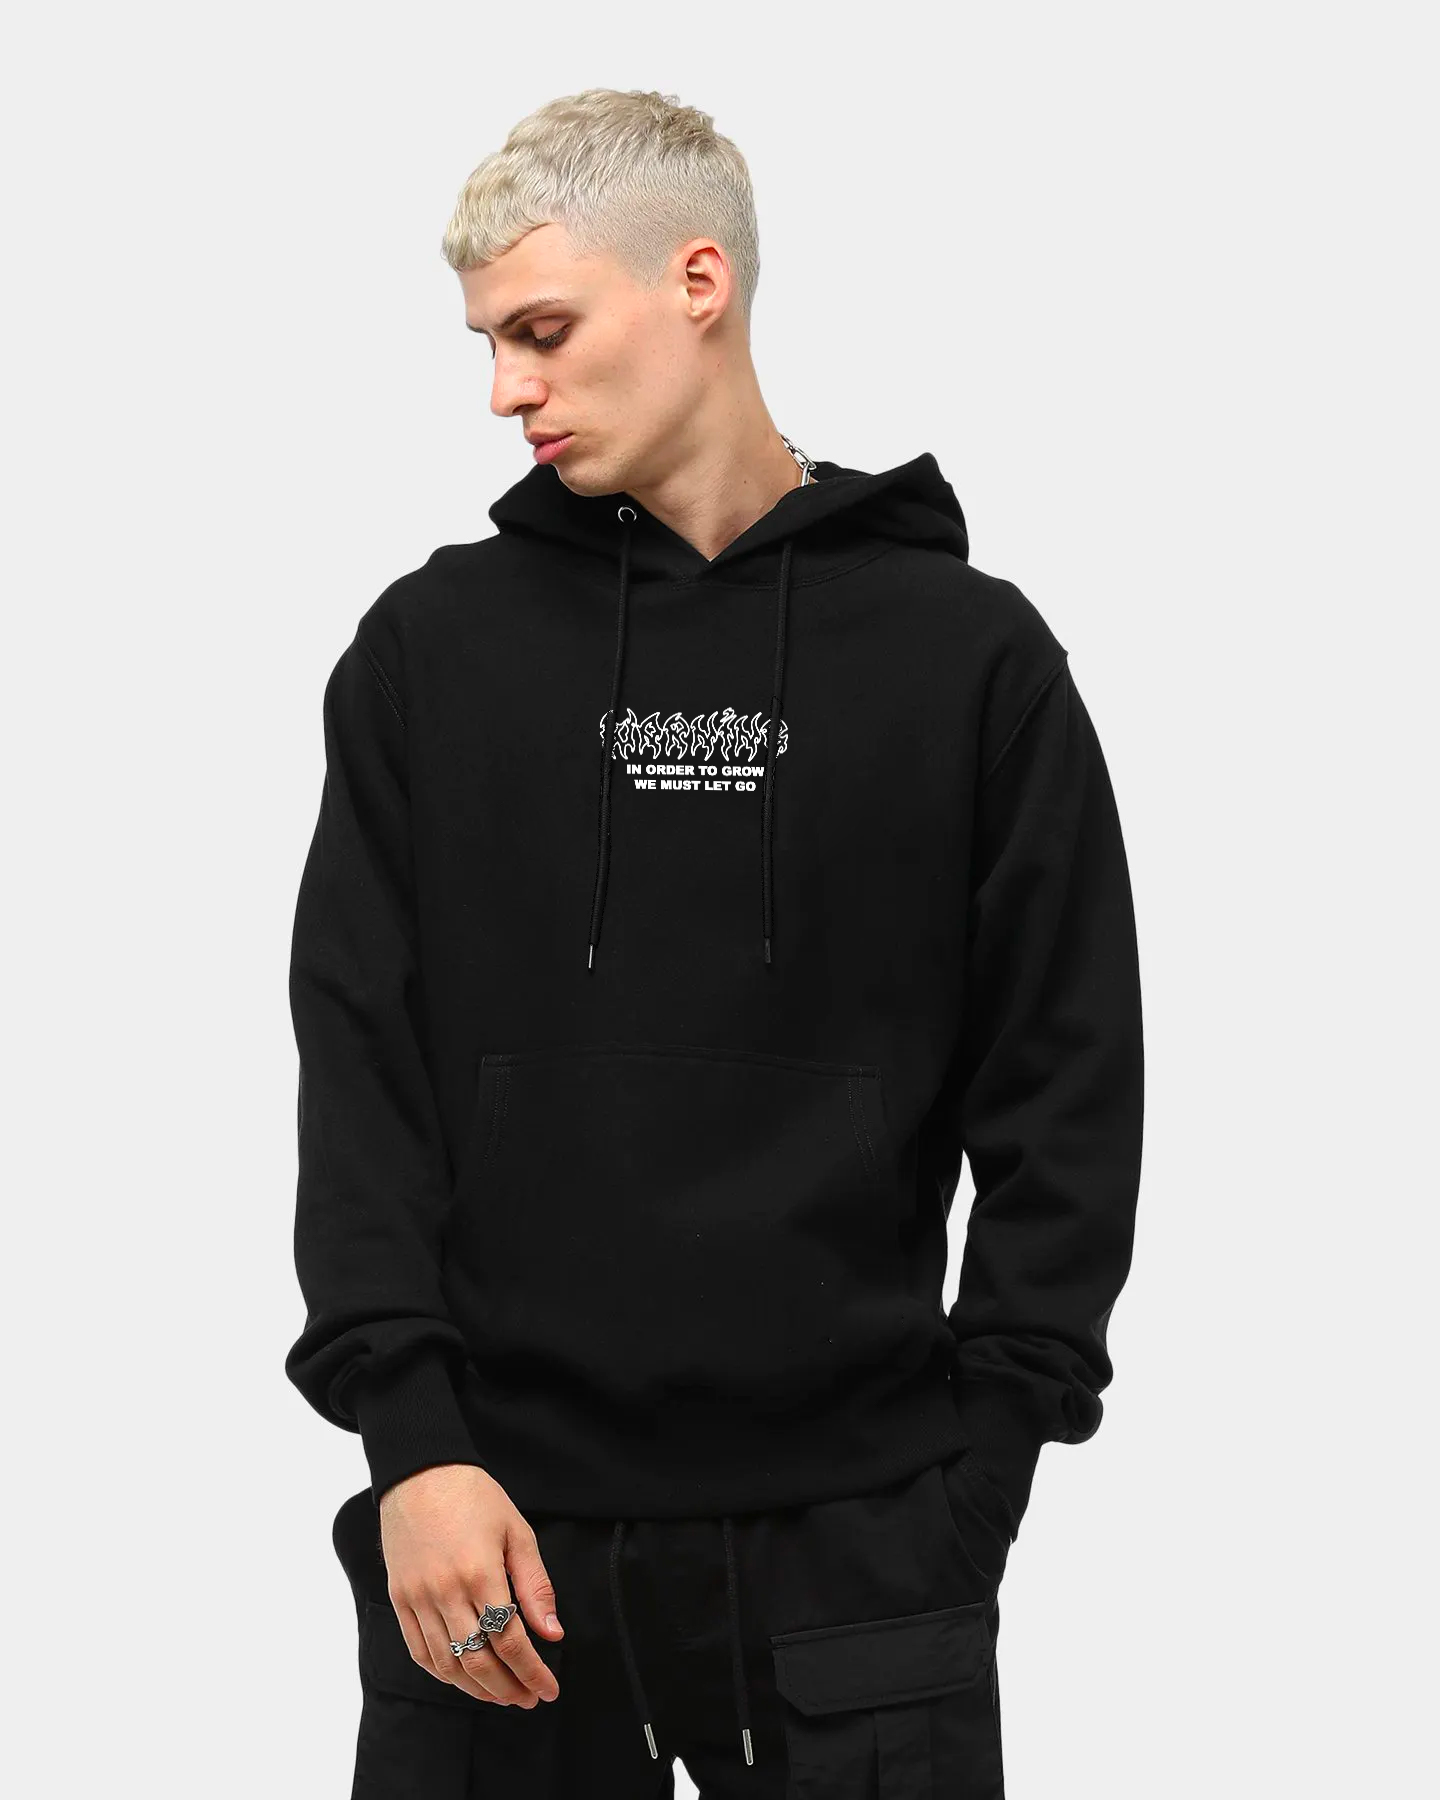 Warning Sign Hoodie Front Male